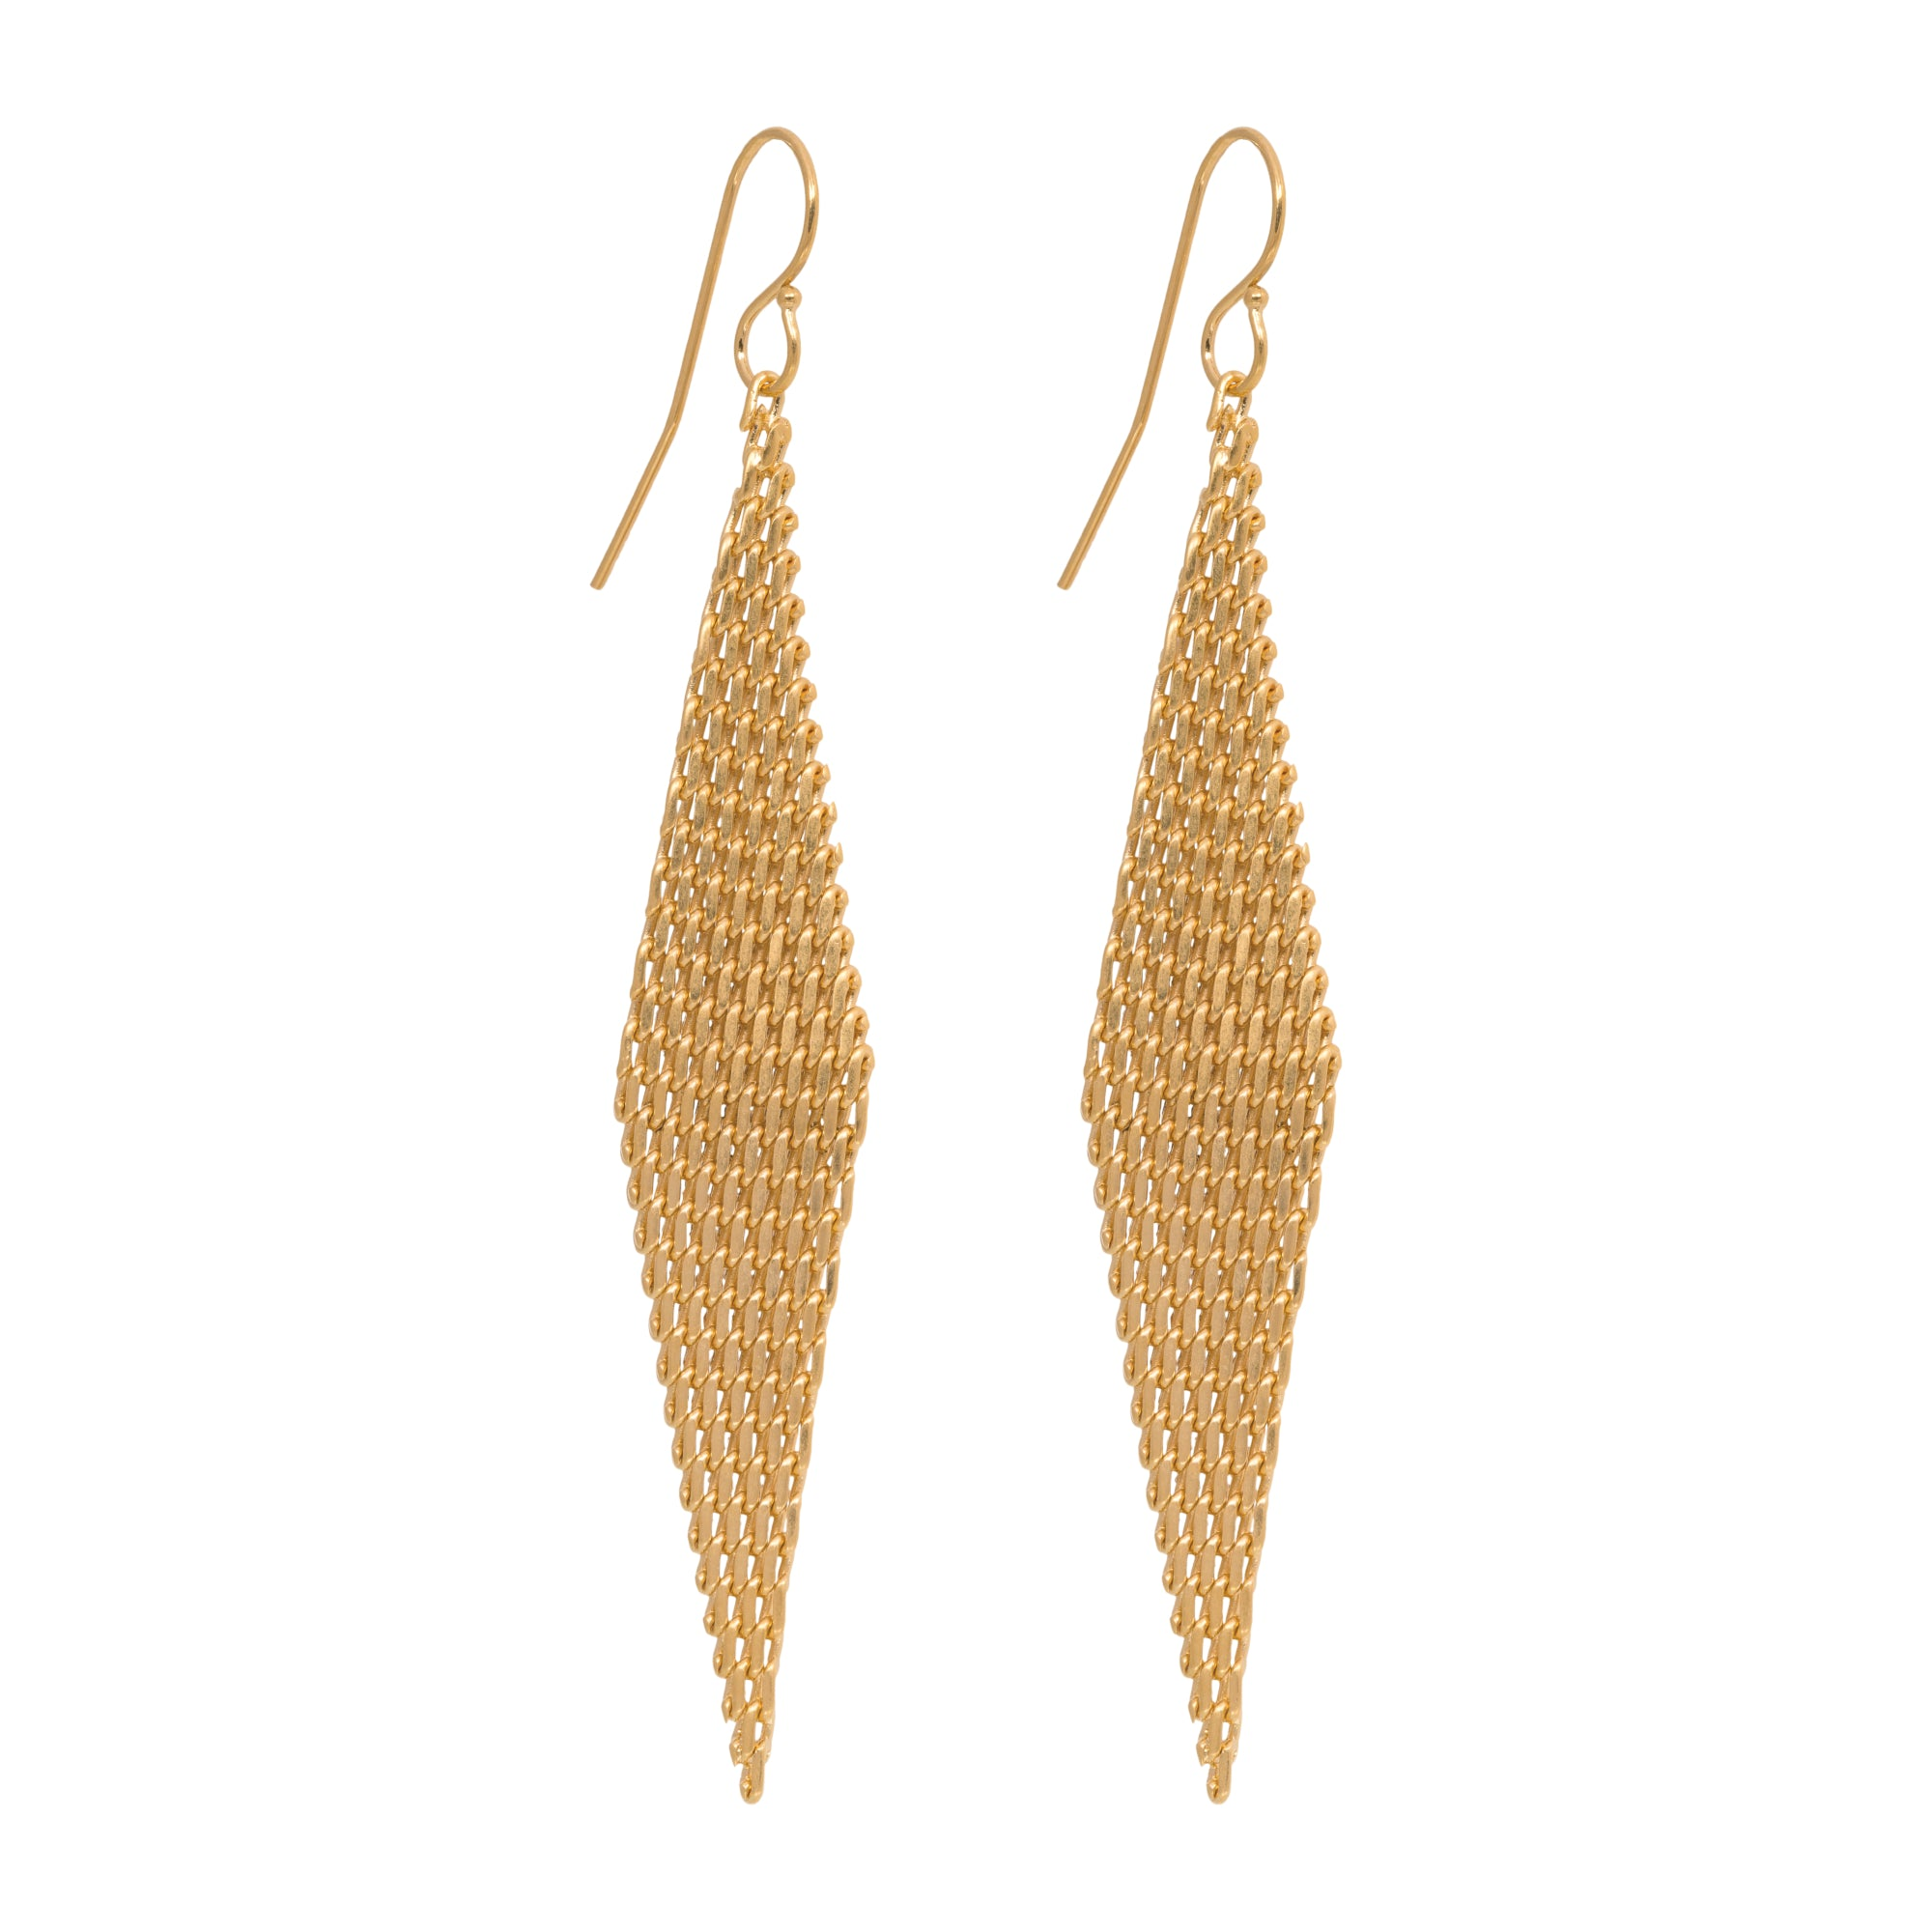 Kiara Pendant Earrings - Gold